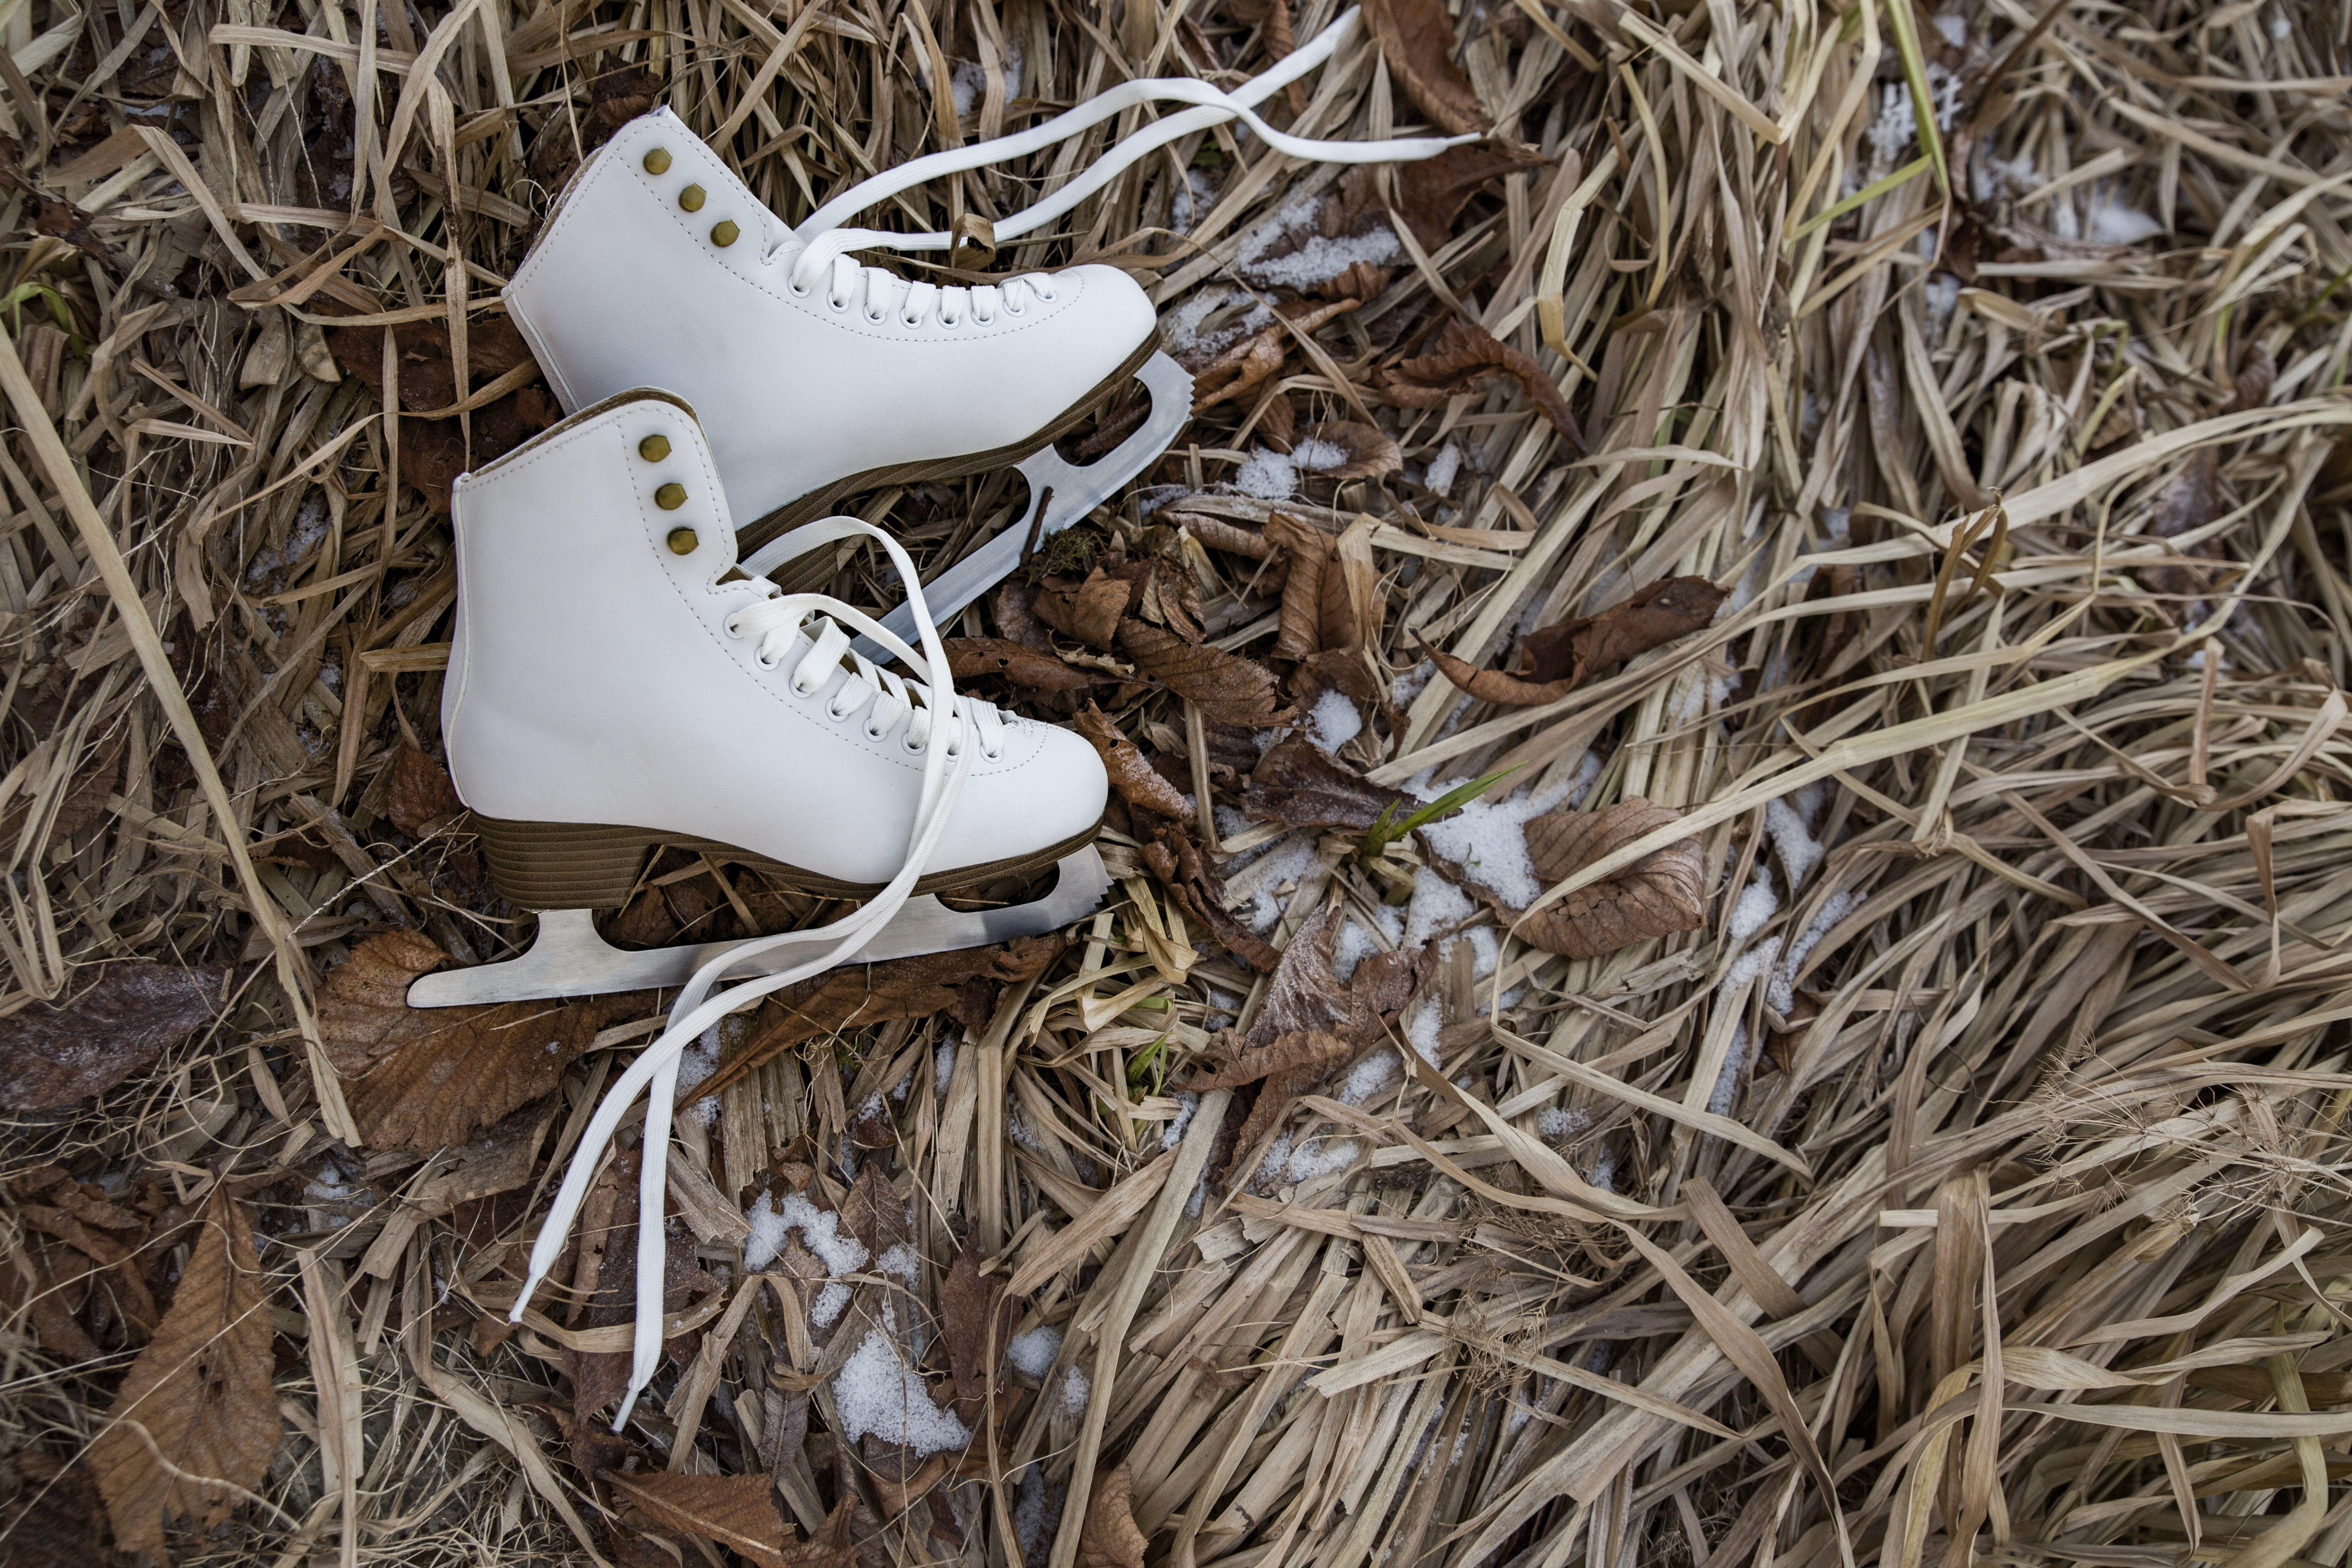 Ice skates lying in icy weeds